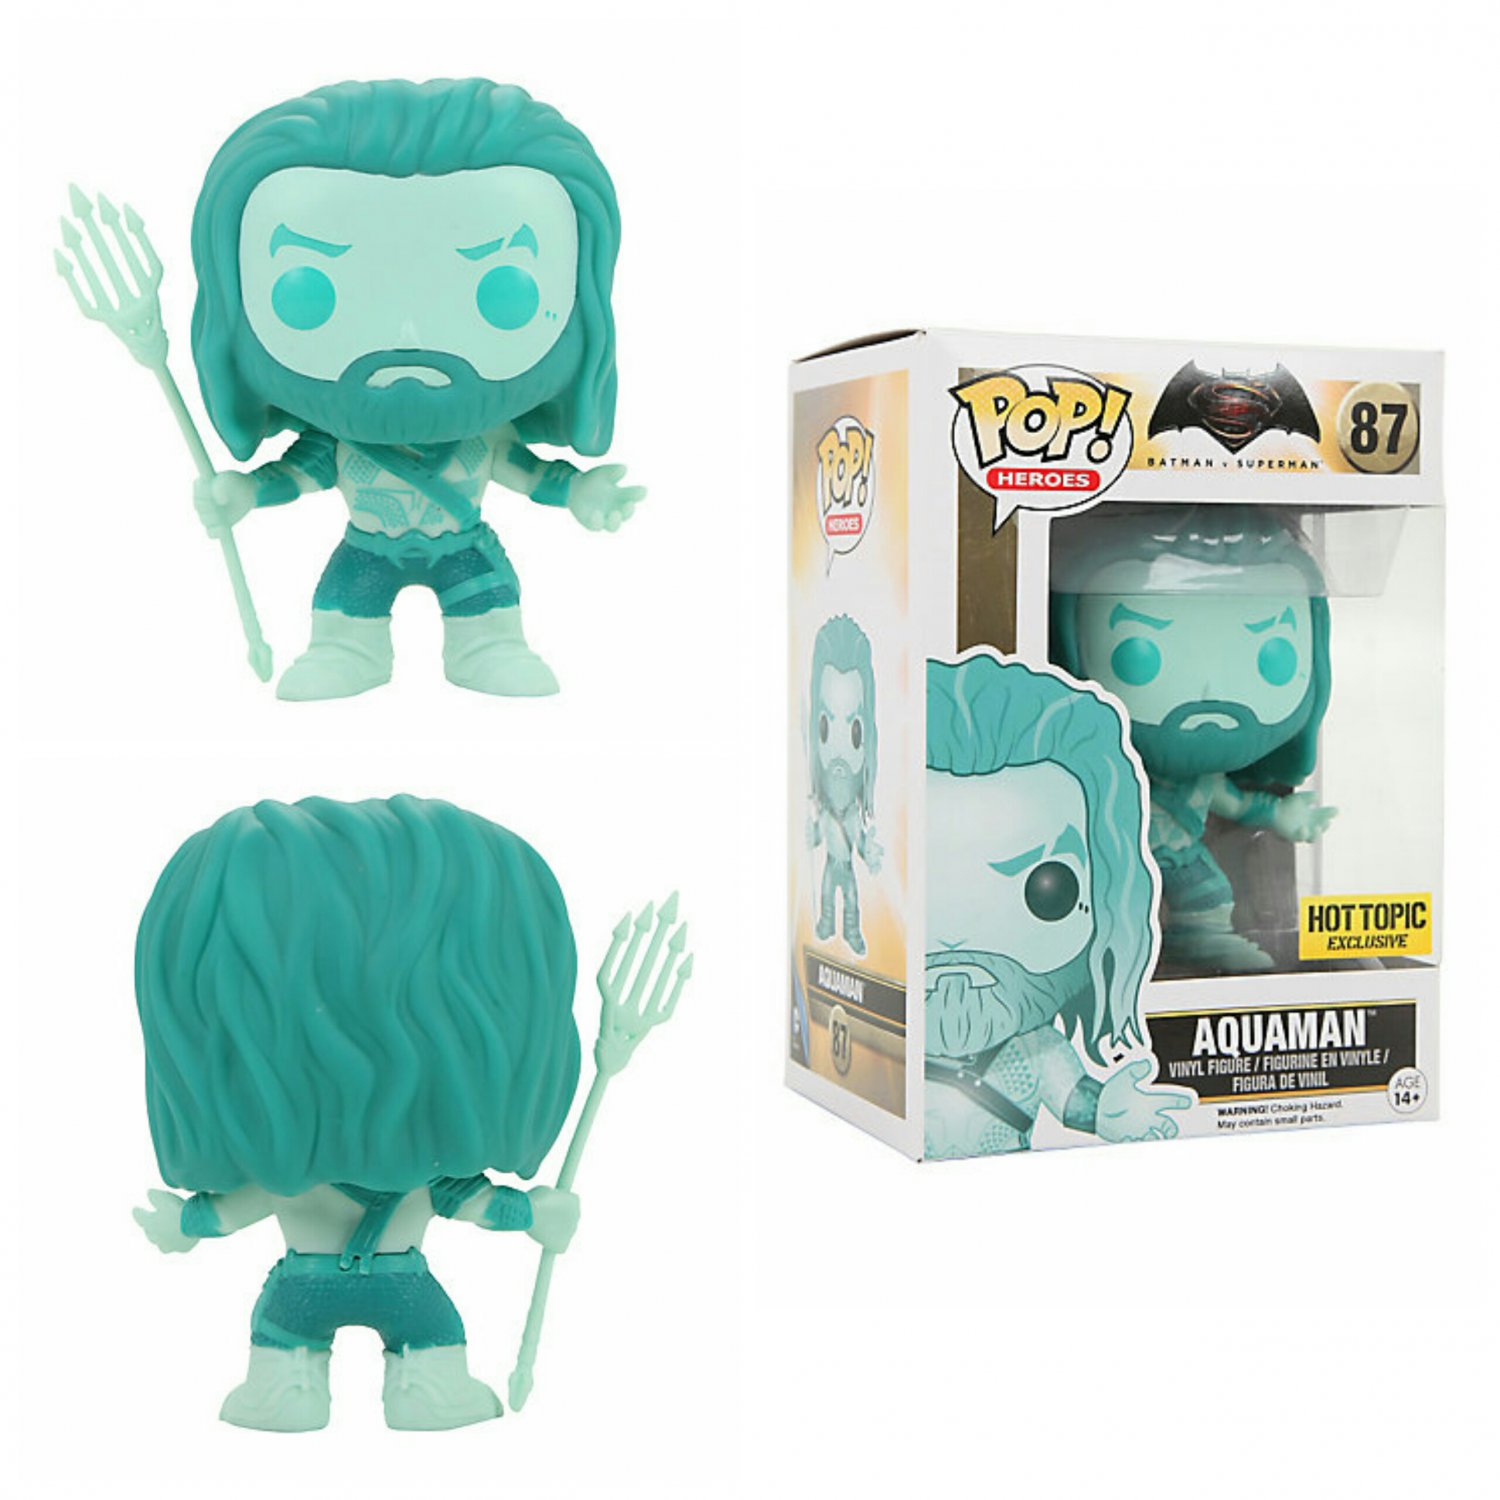 FUNKO DC Comics POP! Batman V Superman: Dawn of Justice Aquaman Figure Hot Topic Exclusive